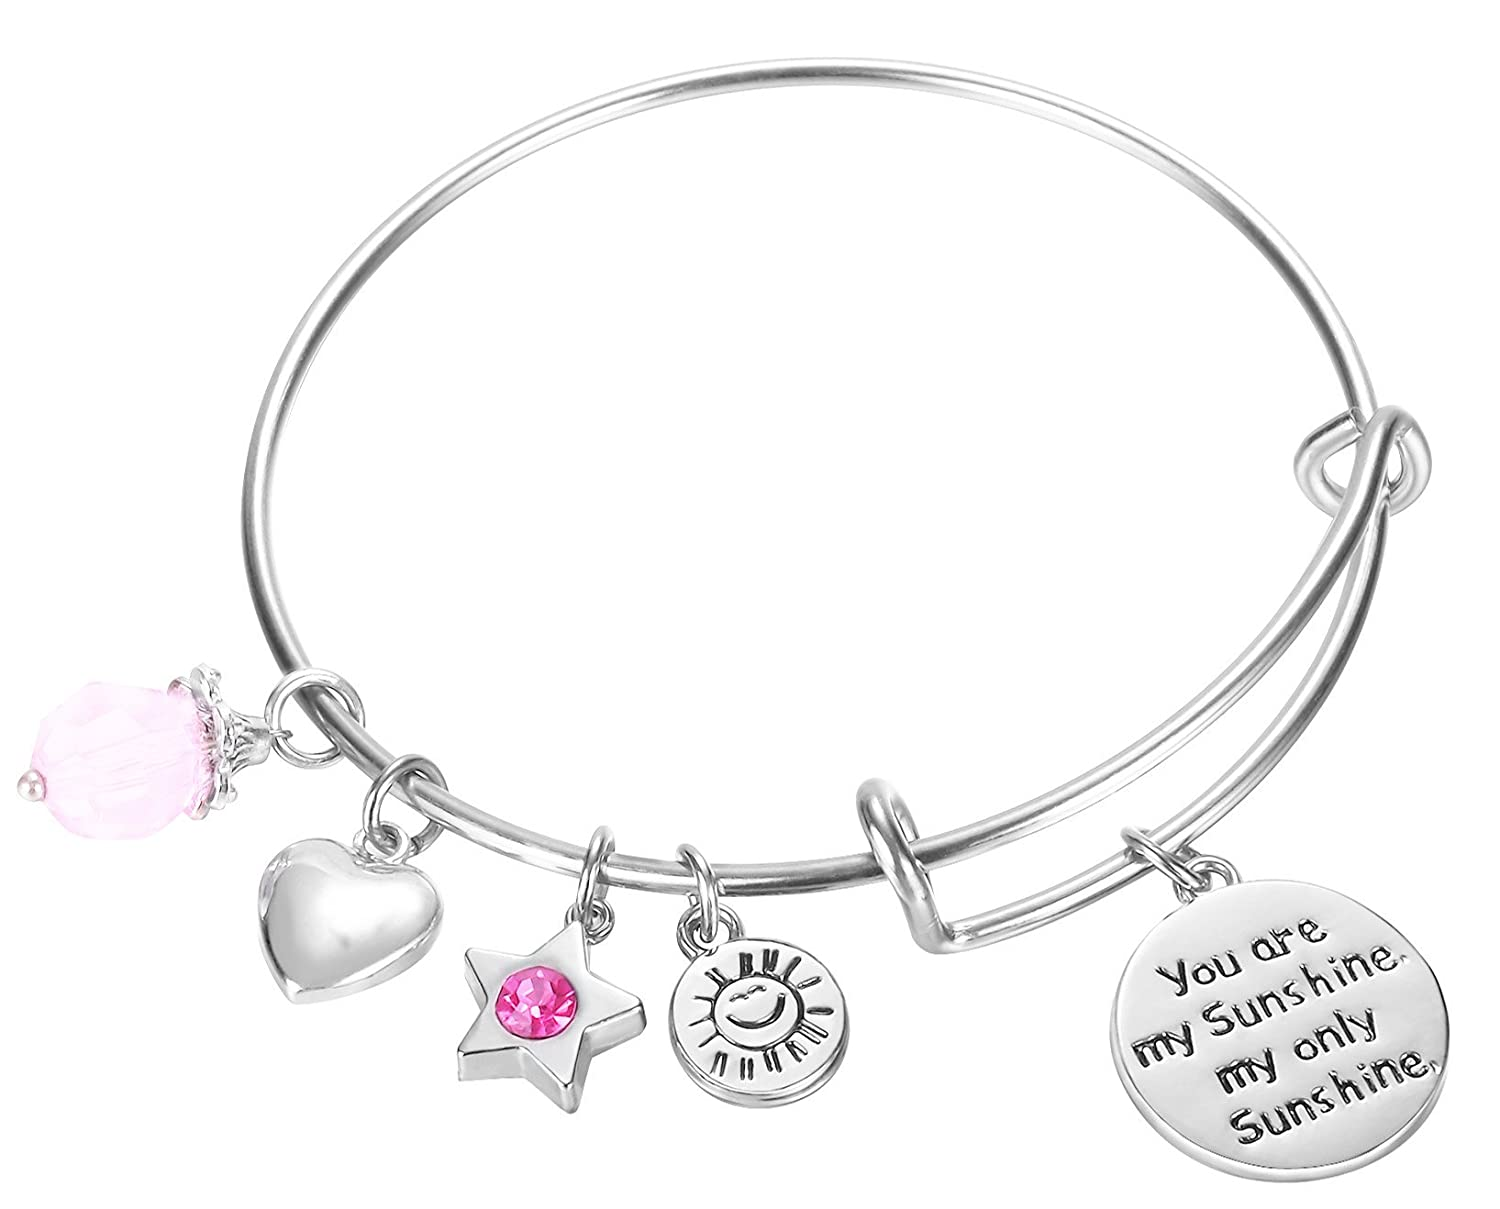 You are my sunshine, my only sunshine Charms Pendant Cute Expandable Wire Bangle Adjustable Bracelet